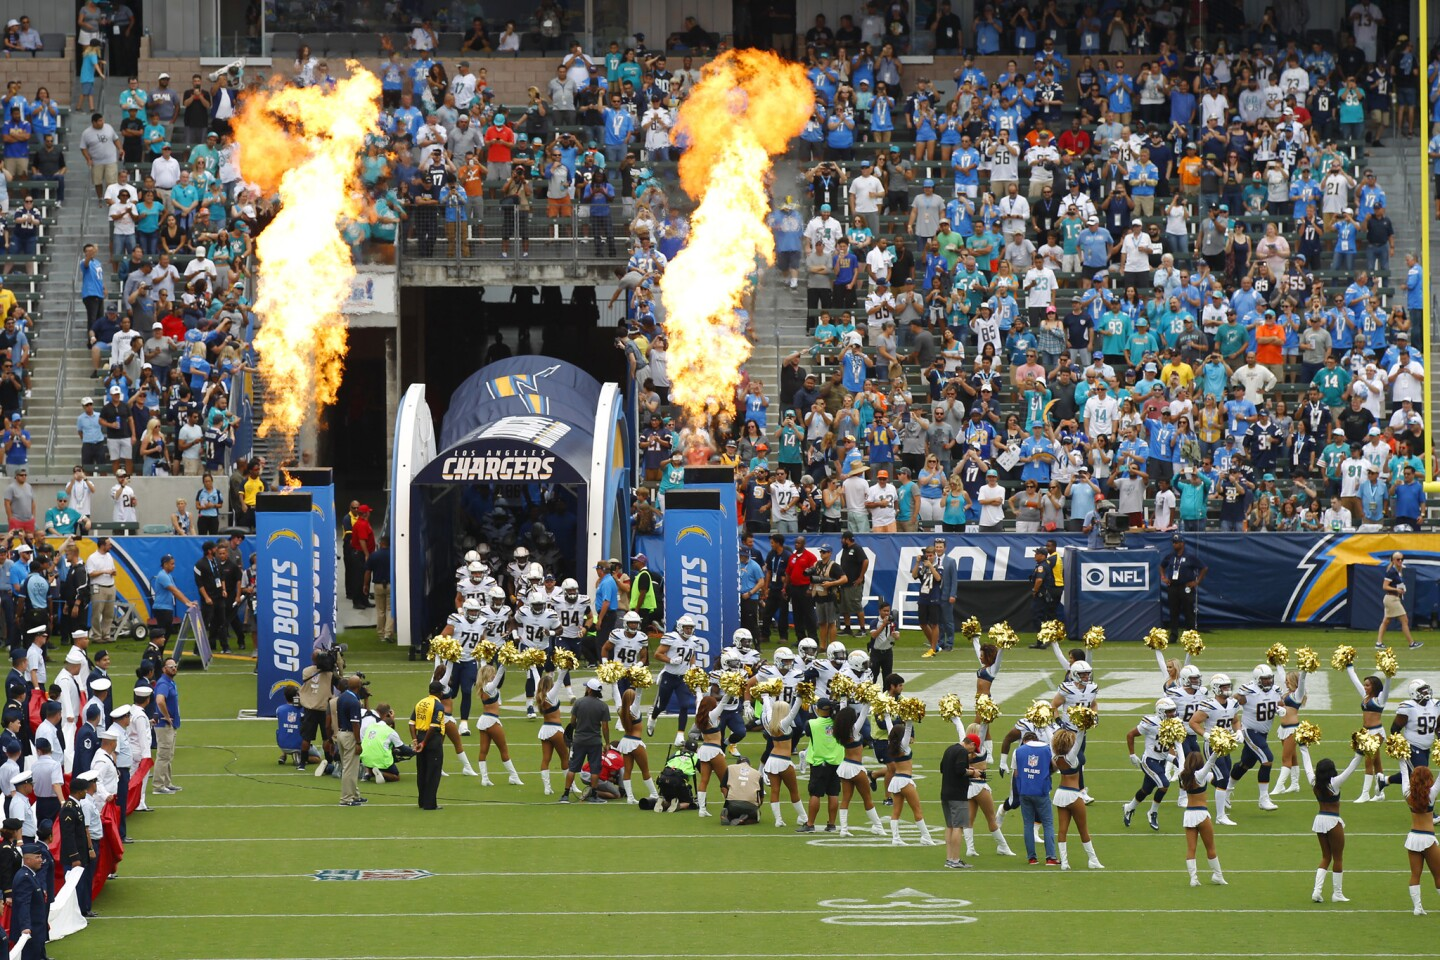 Chargers vs. Dolphins 9/17/17